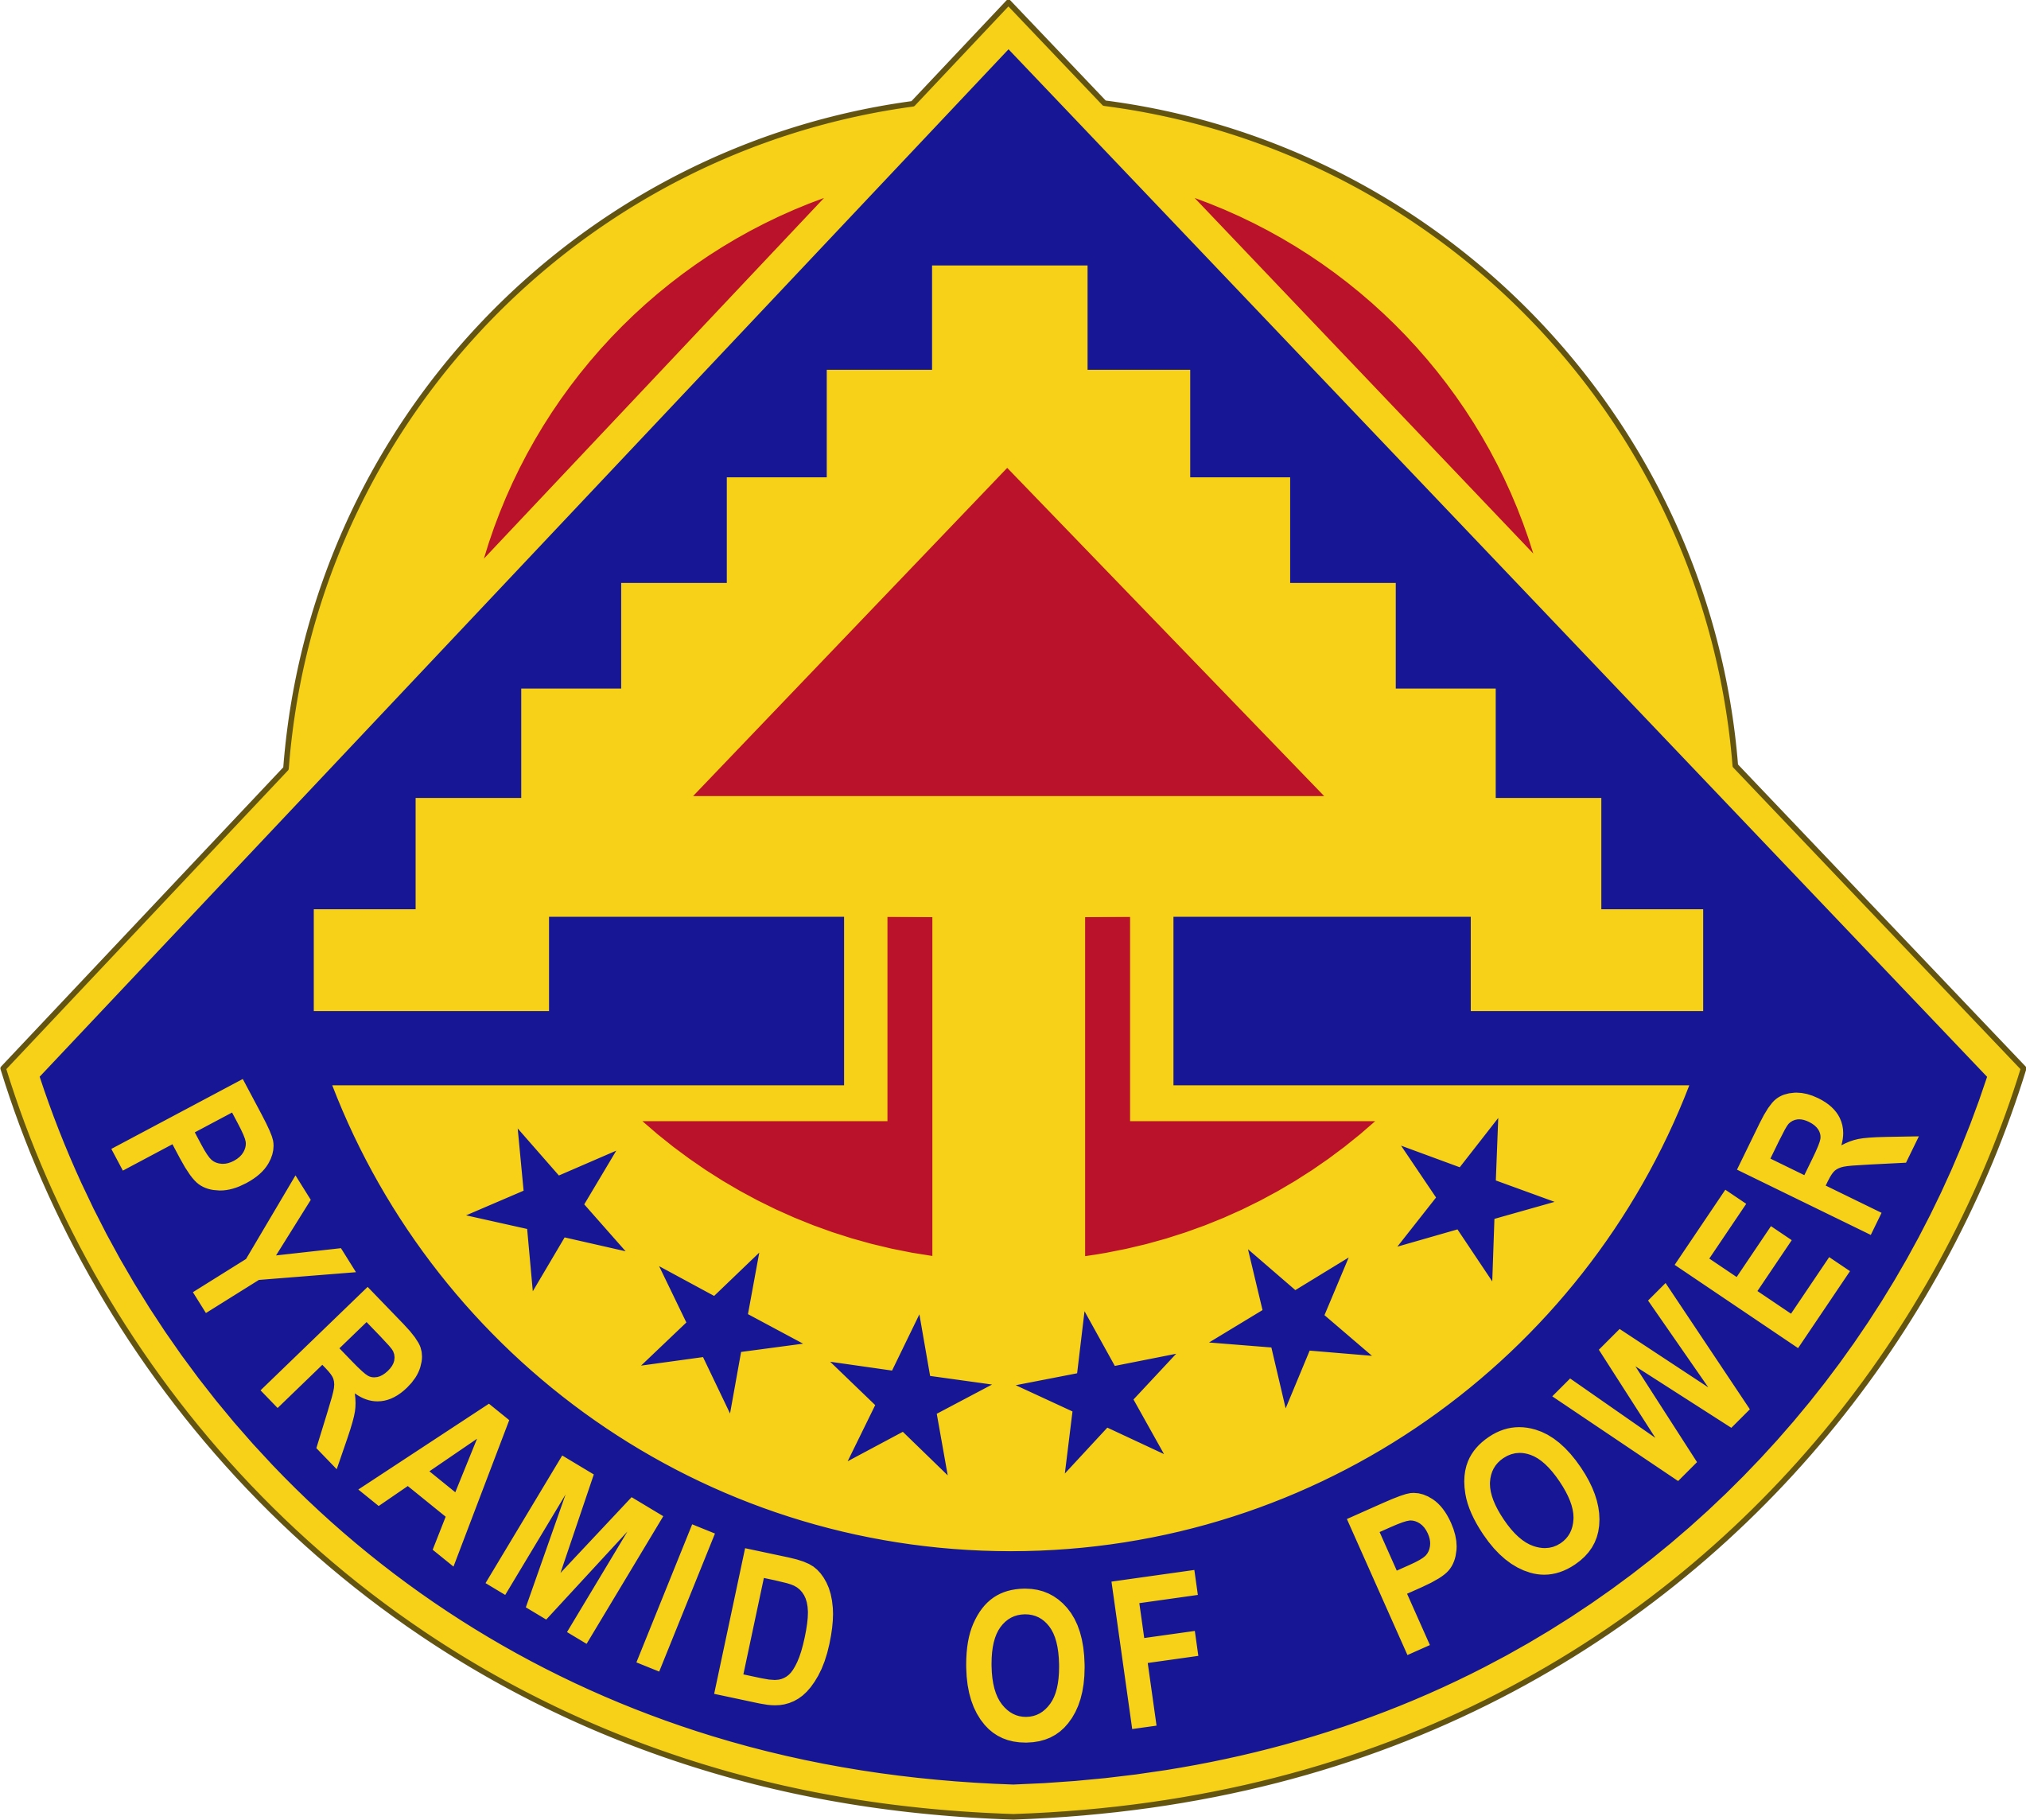 Seventh United States Army.